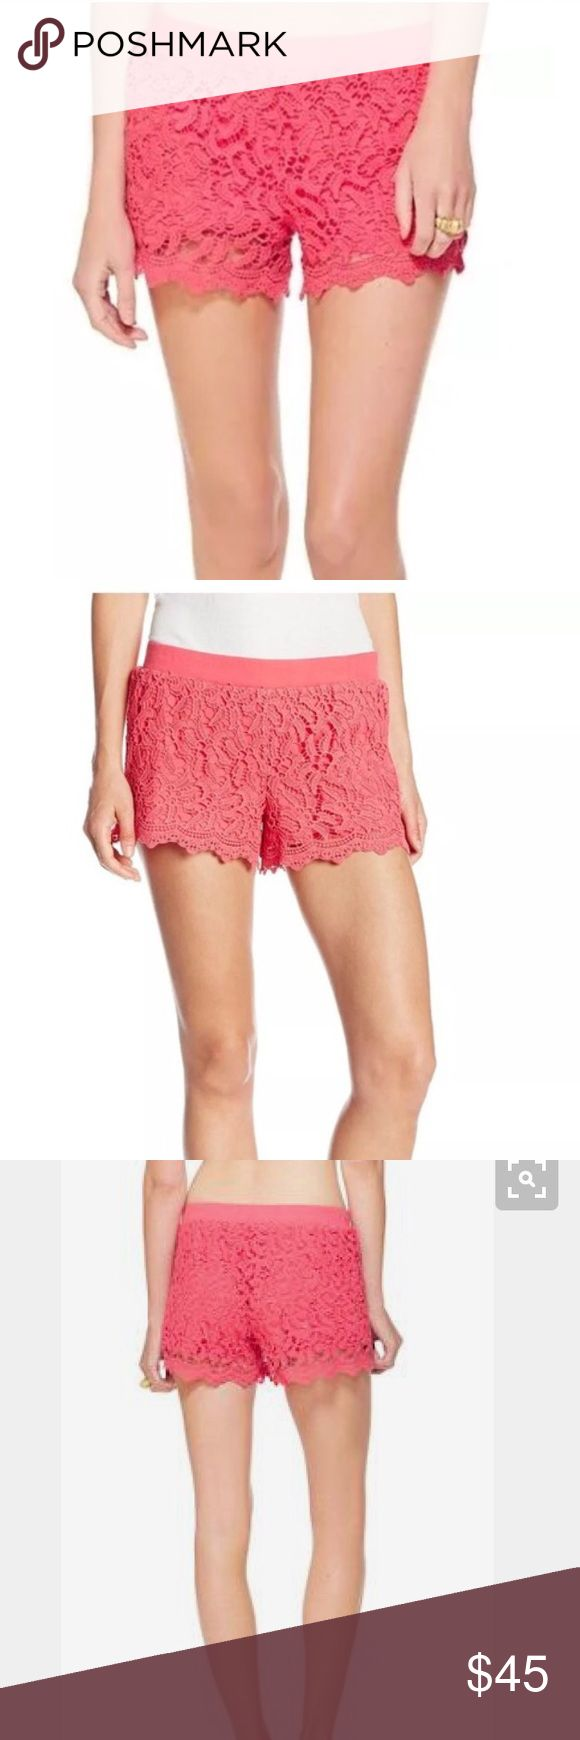 """Lilly Pulitzer pink lace shorts Size large from Lilly Pulitzer , worn once . 31"""" inseam garmet dyed cotton lace pull on short with rib knit waistband. Retails for $118 Lilly Pulitzer Shorts"""